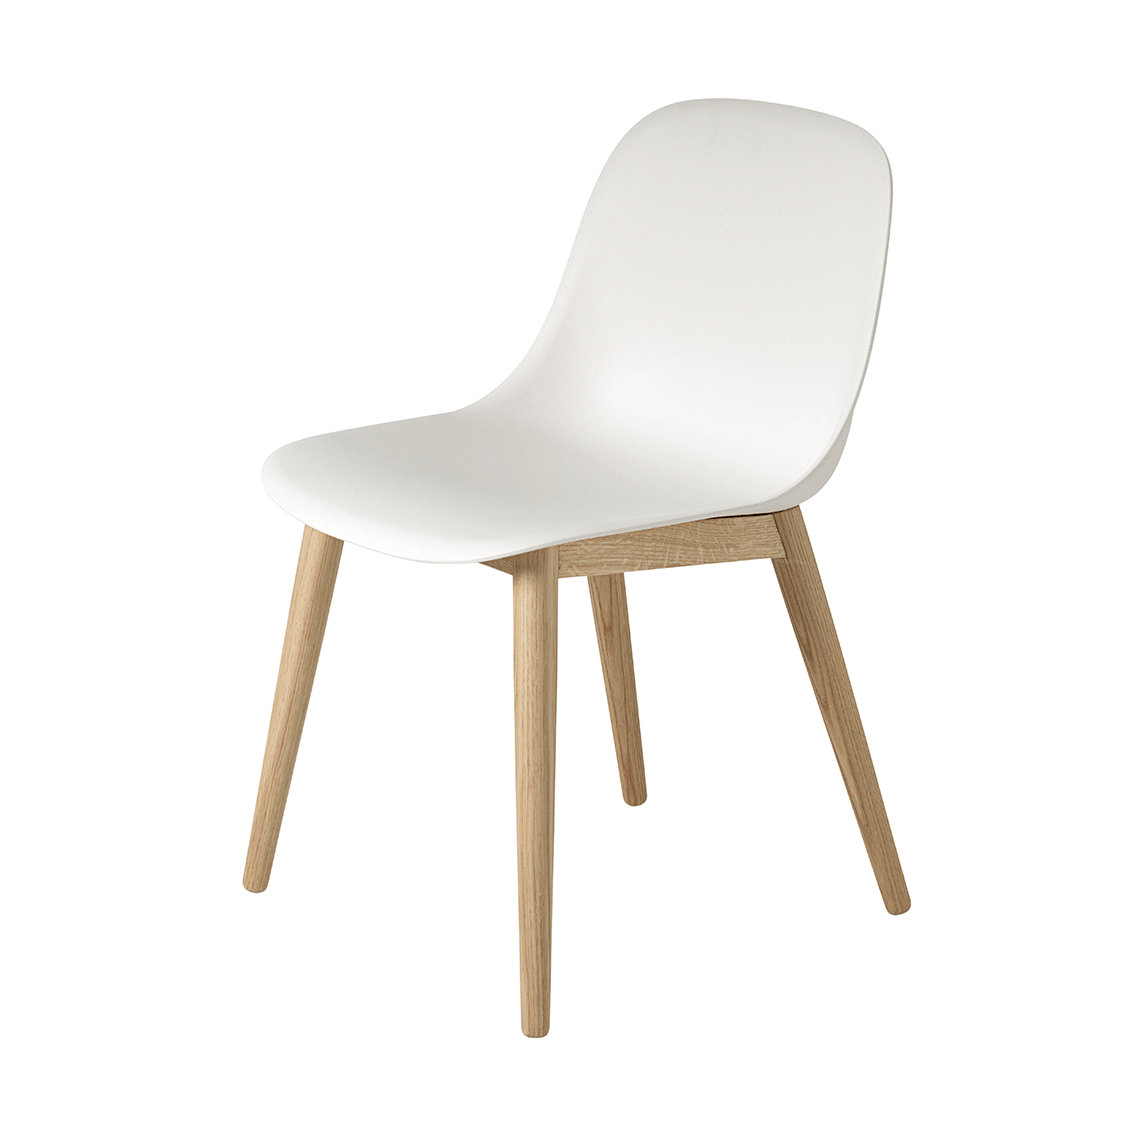 muuto fiber side chair wood base stoel the shop online. Black Bedroom Furniture Sets. Home Design Ideas